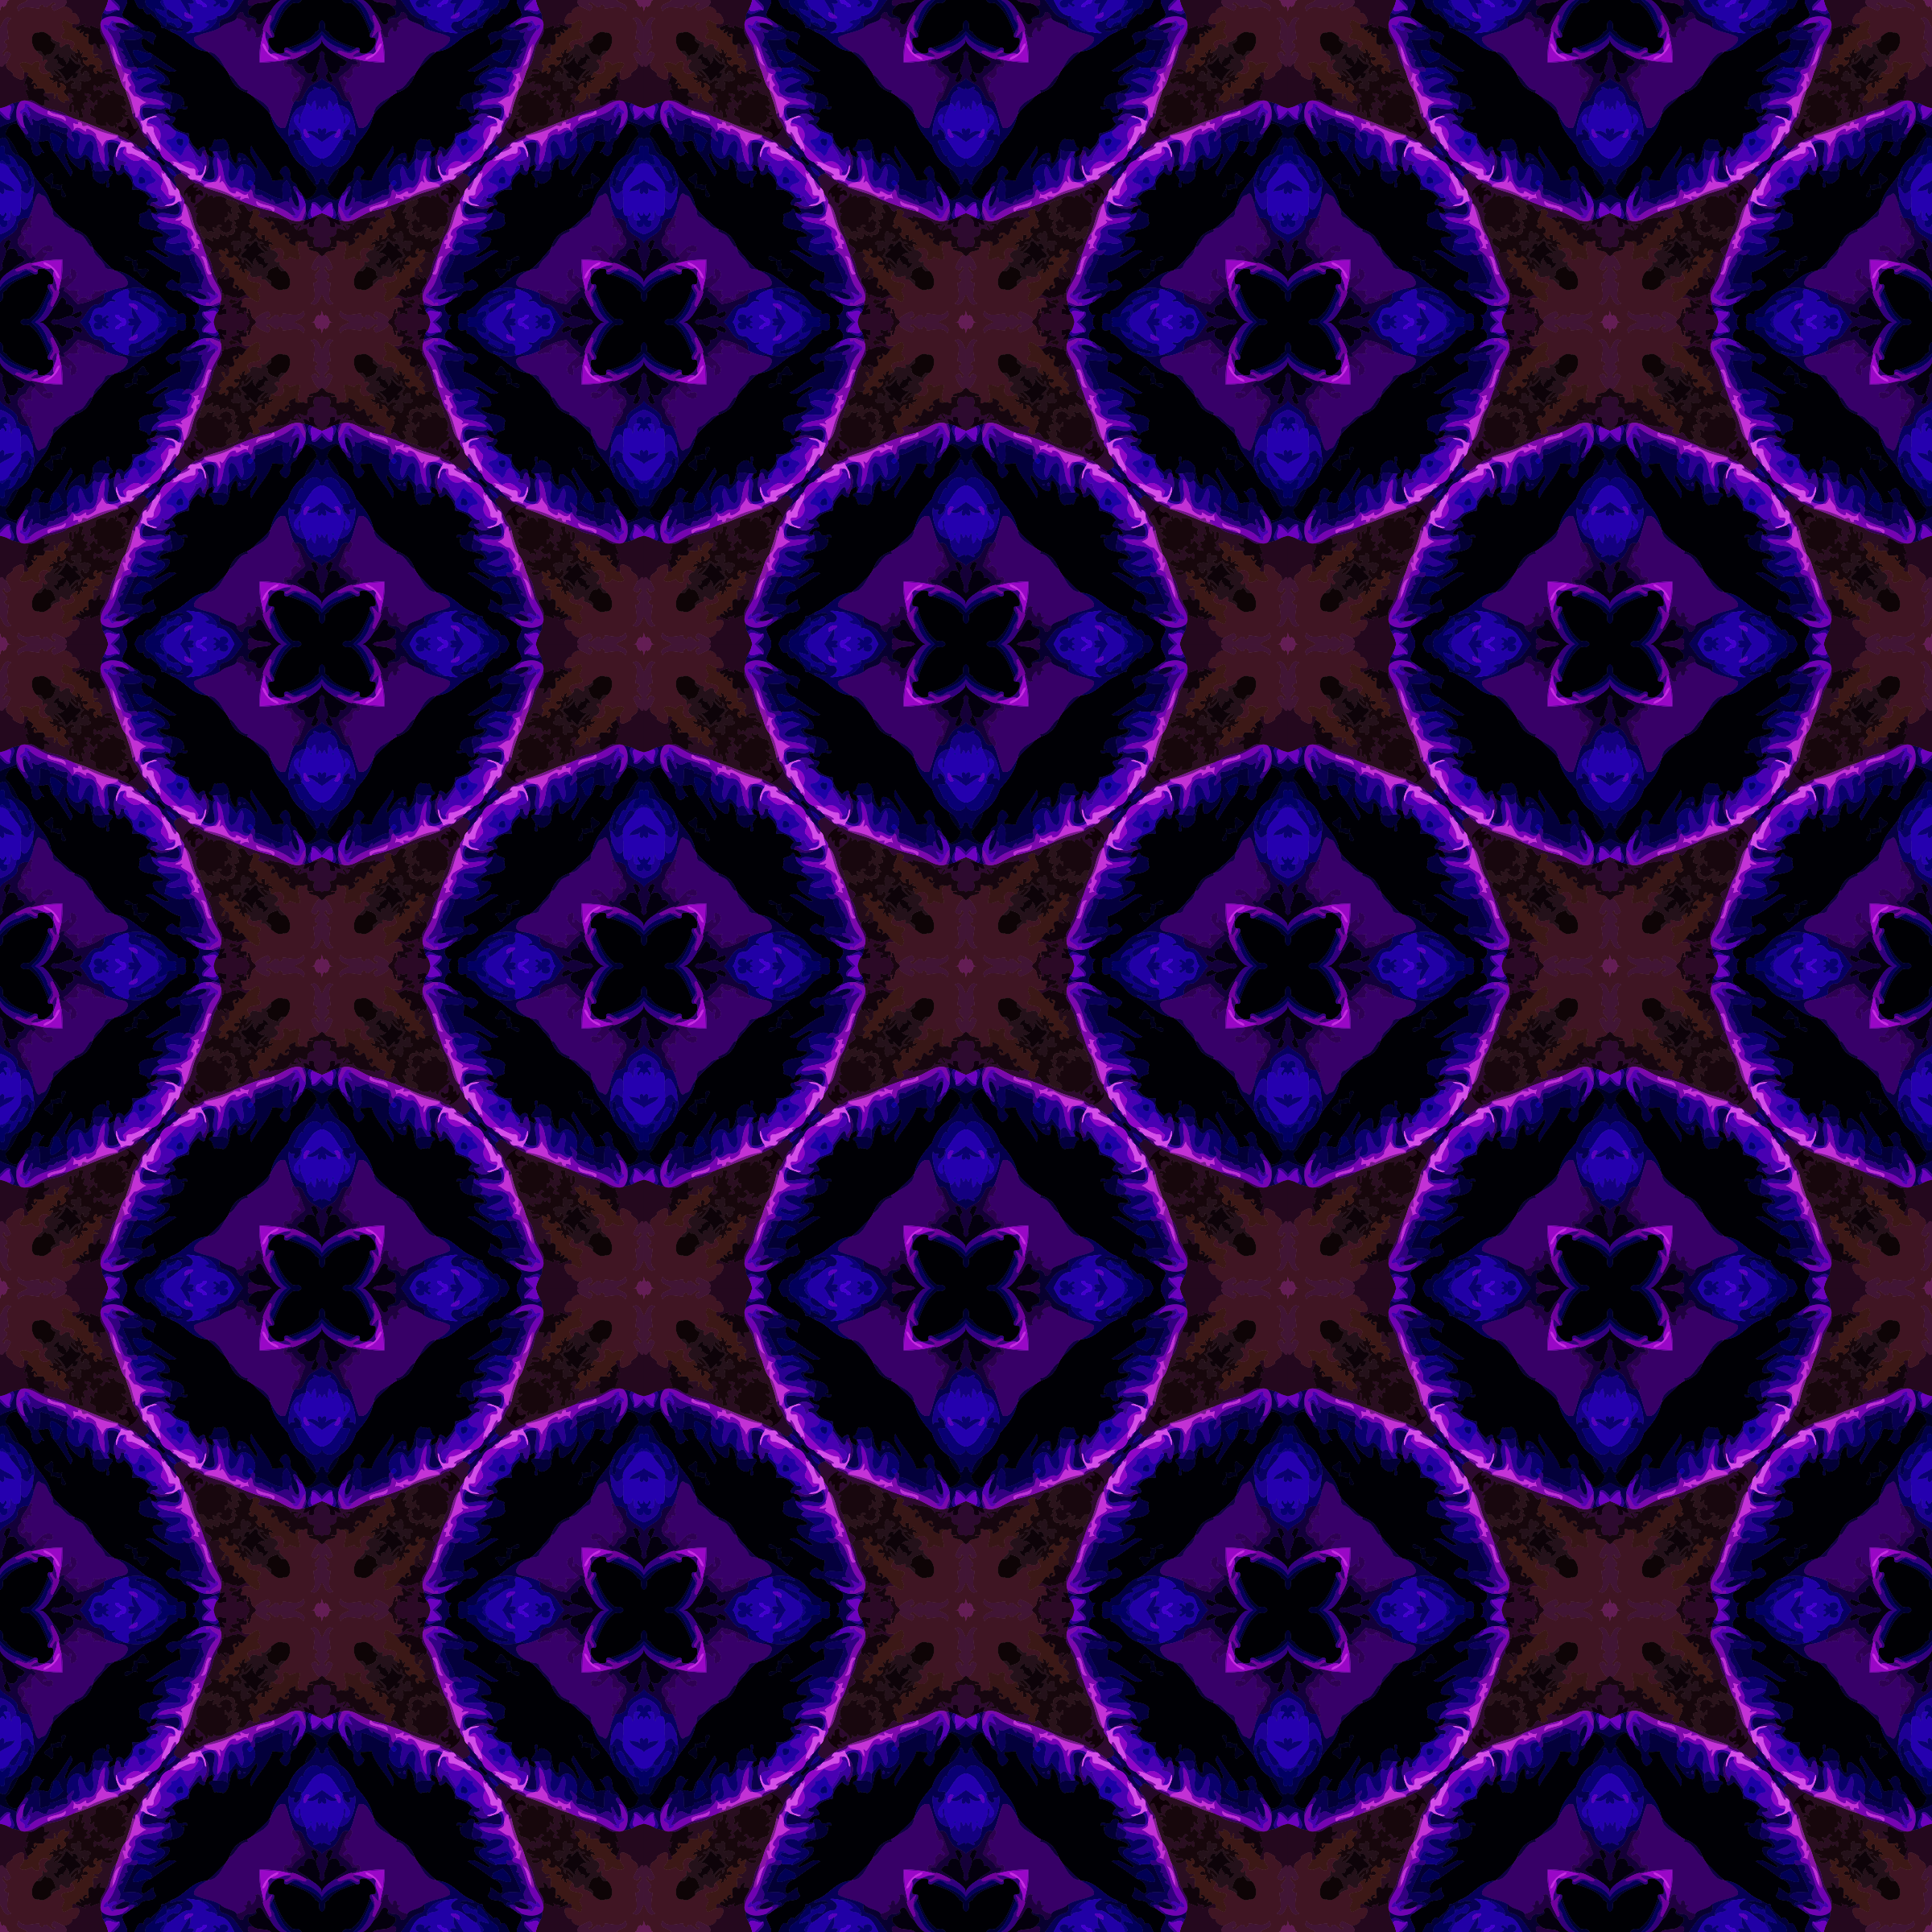 Background pattern 142 (colour 3) by Firkin